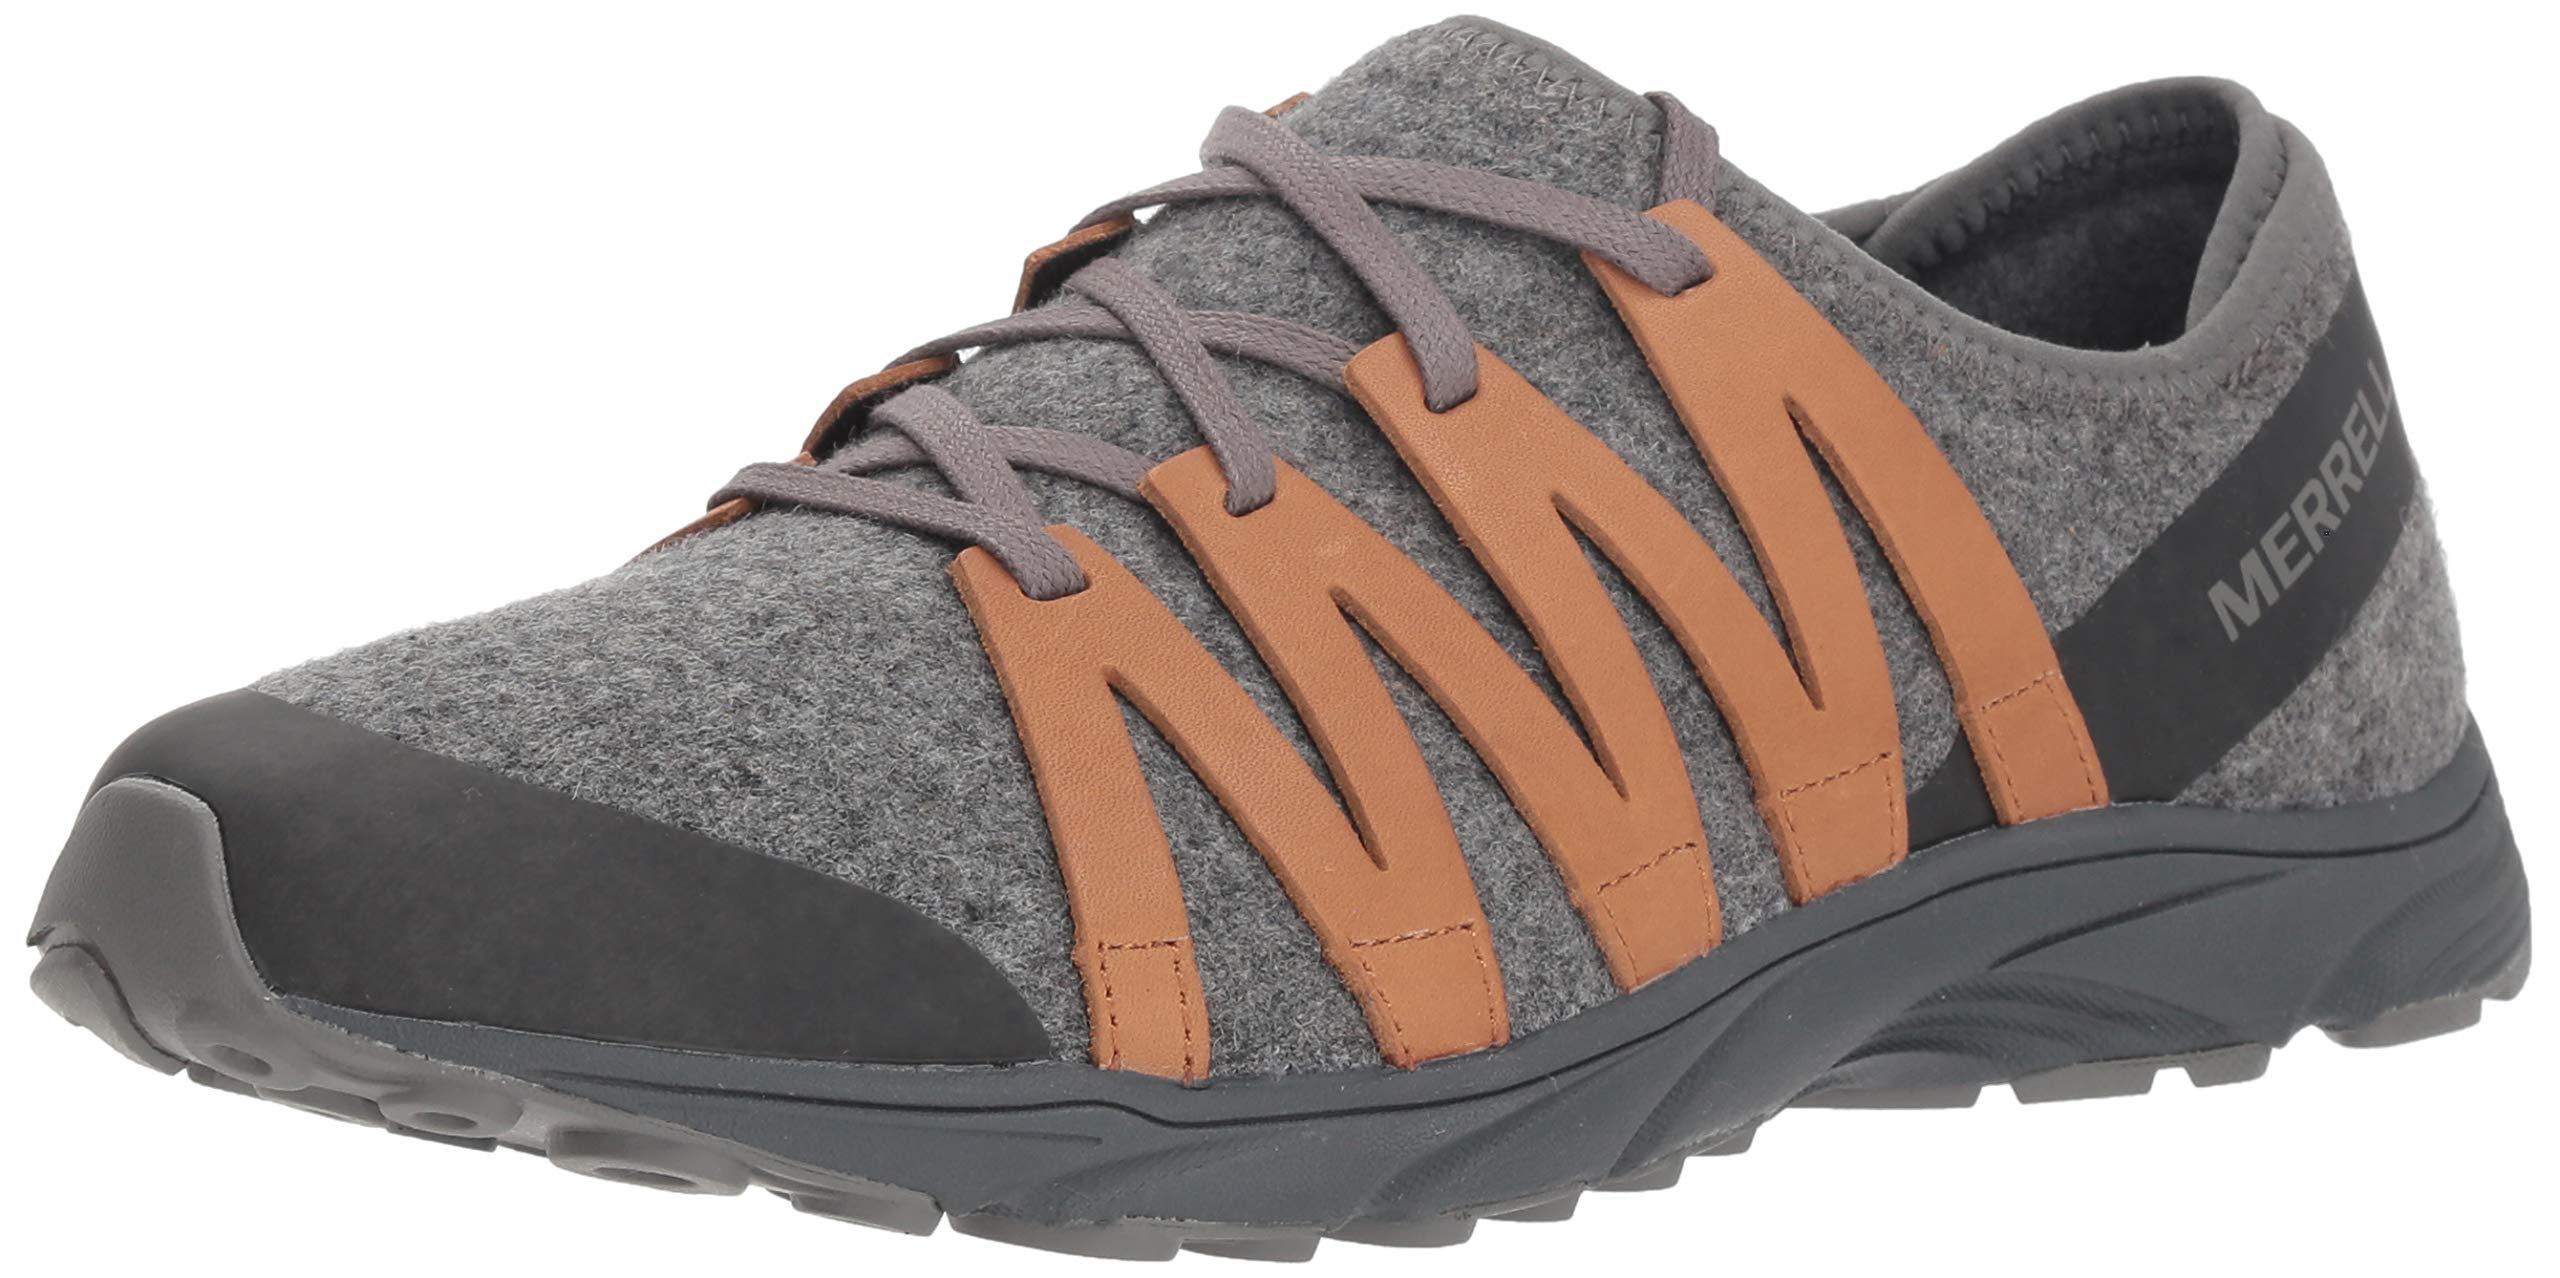 Merrell Women's Riveter Wool Sneaker Charcoal 11 M US by Merrell (Image #1)